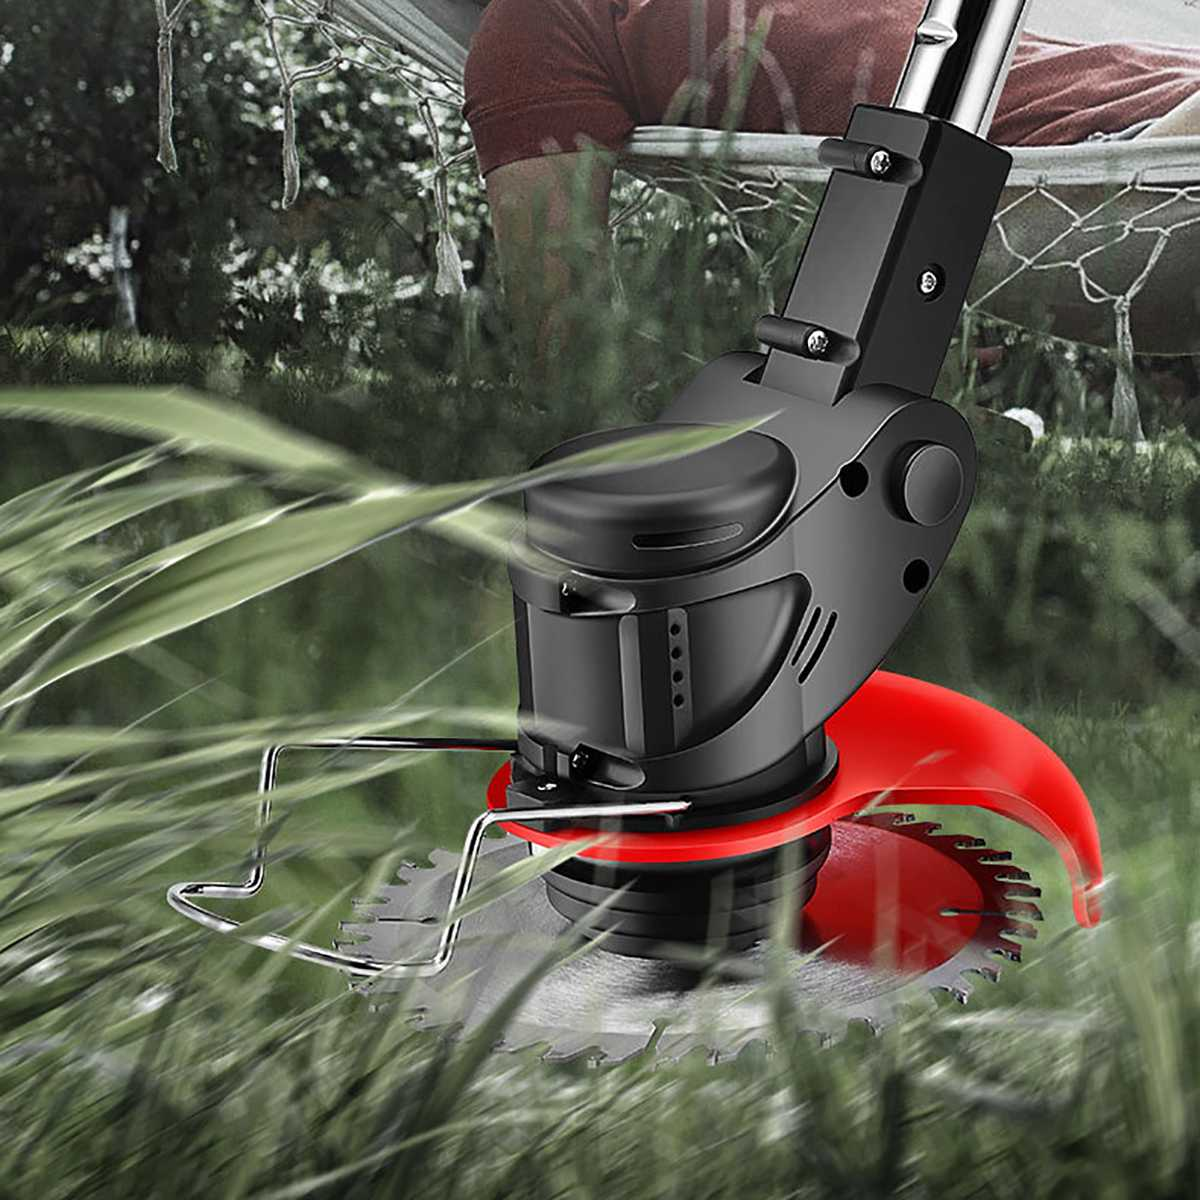 Tools : Portable Electric Grass Trimmer Handheld Lawn Mower Agricultural Household Cordless Weeder Garden Pruning Tool Brush Cutter